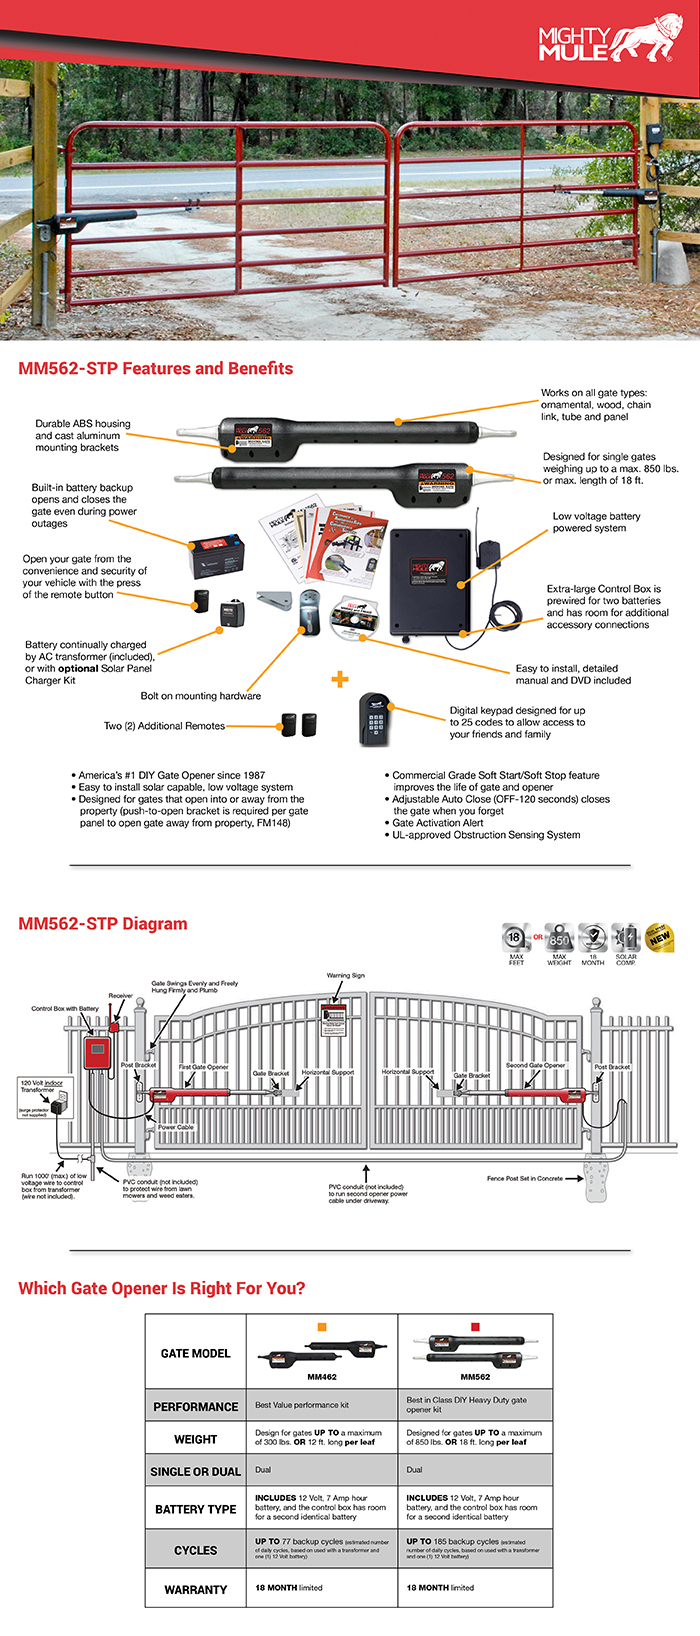 mighty mule heavy duty dual swing automatic gate opener access package mm562 stp the home depot. Black Bedroom Furniture Sets. Home Design Ideas